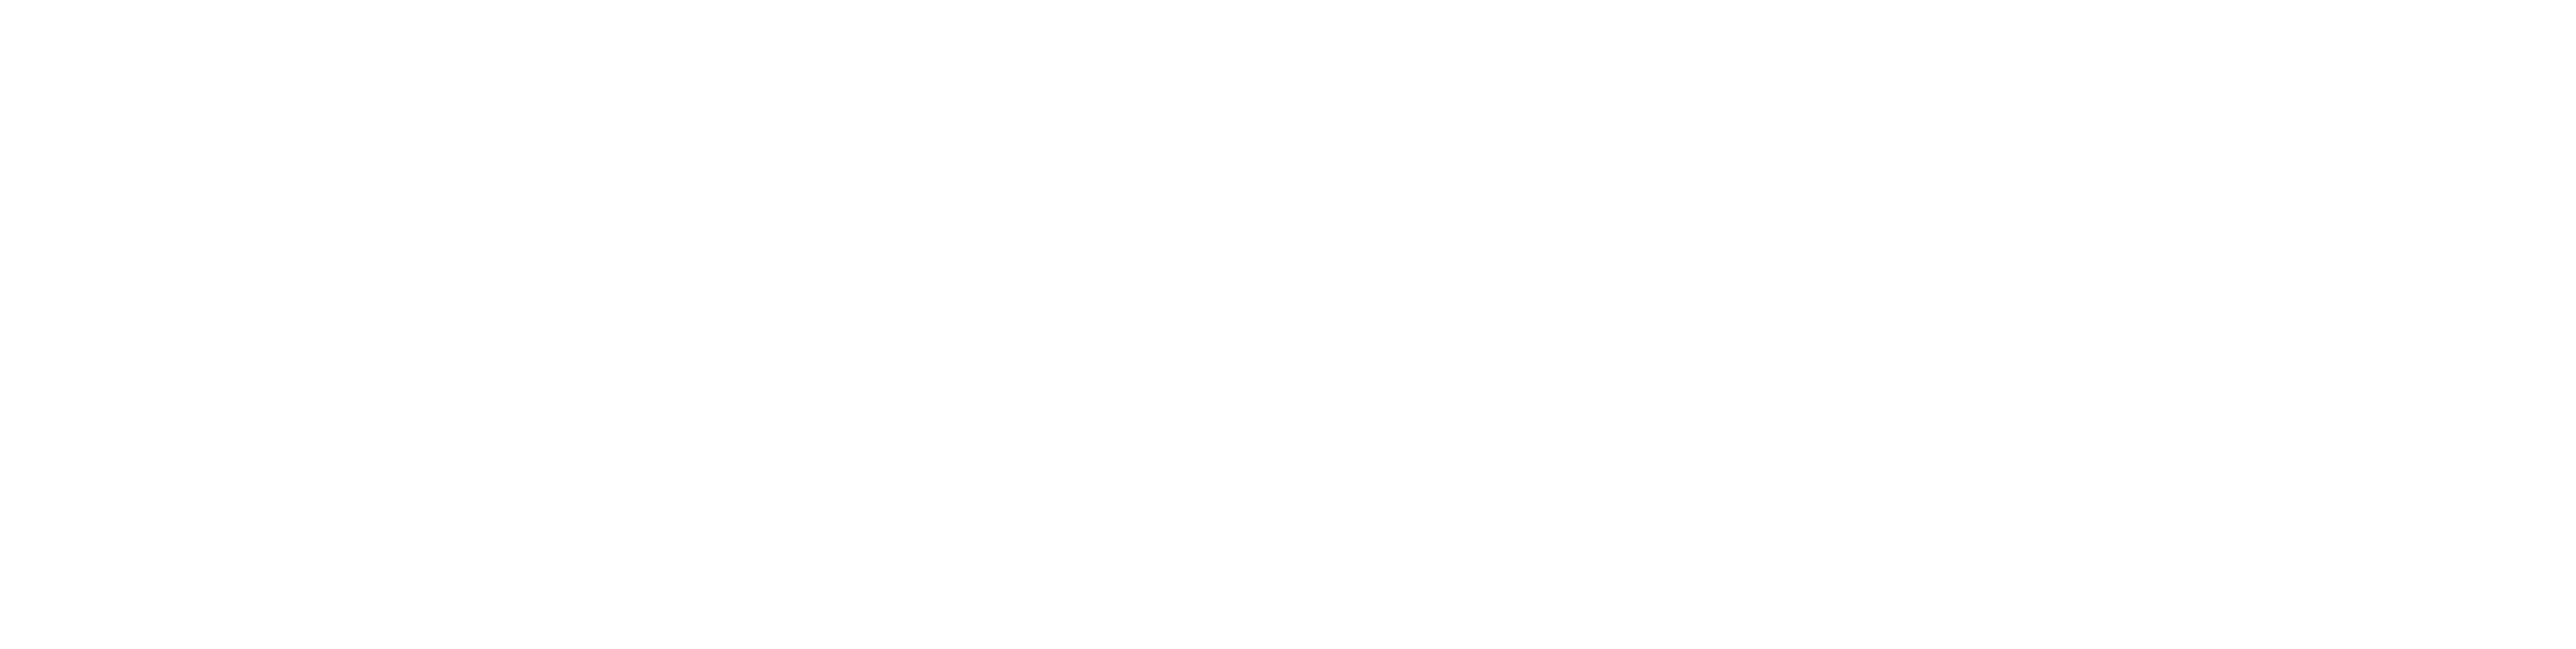 The Datalabs Agency's Online Training